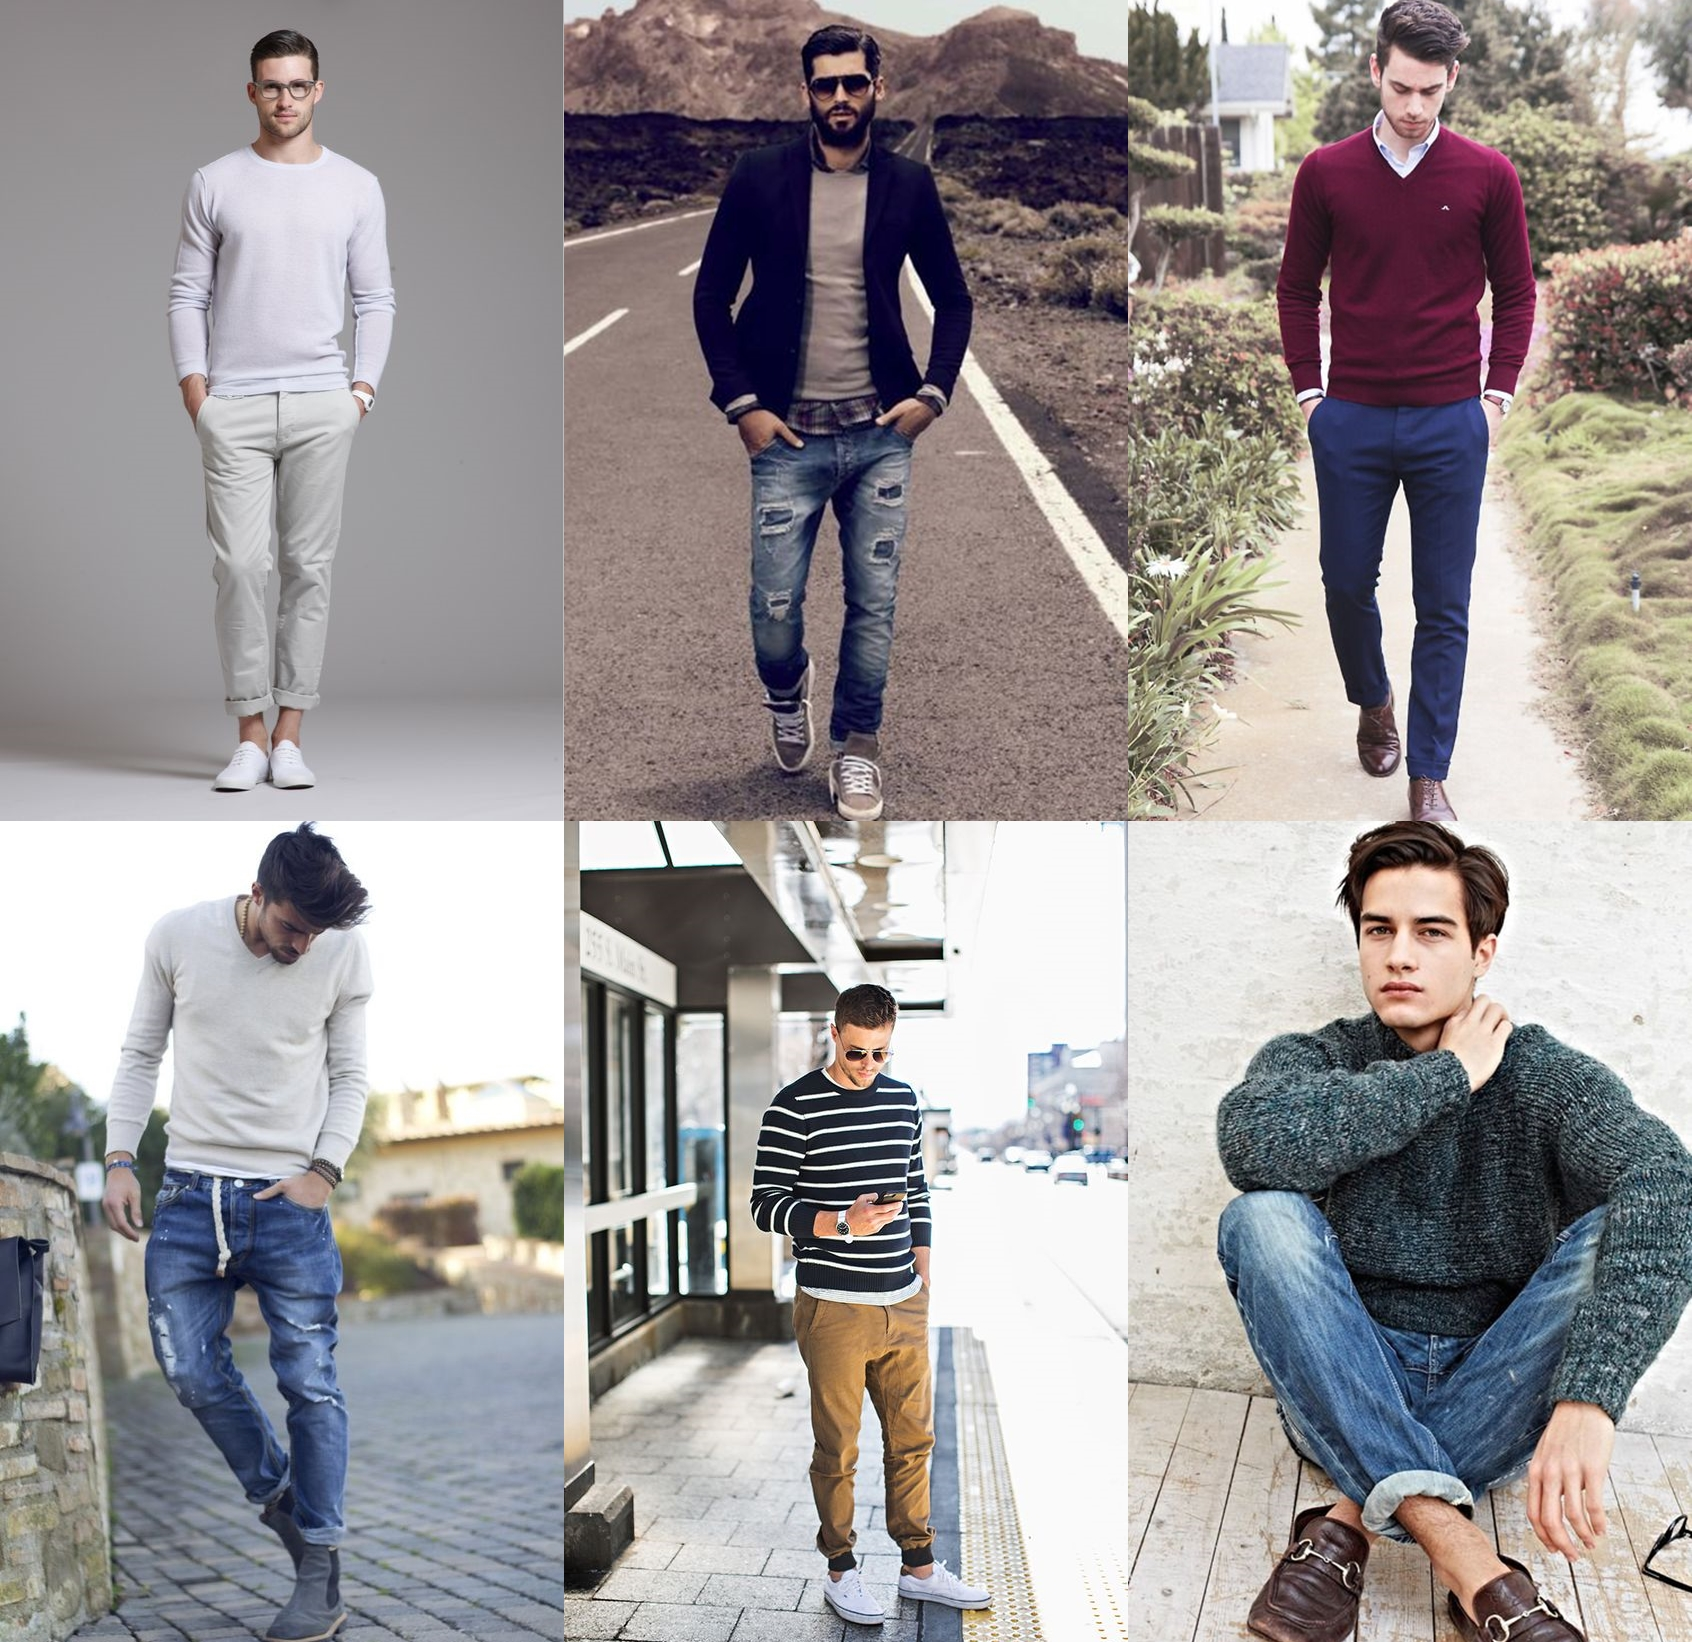 como usar sueter, sueter masculino, pulover men, fashion tips, dicas de moda, alex cursino, moda sem censura, blog de moda, digital influencer, youtuber, menswear, 5